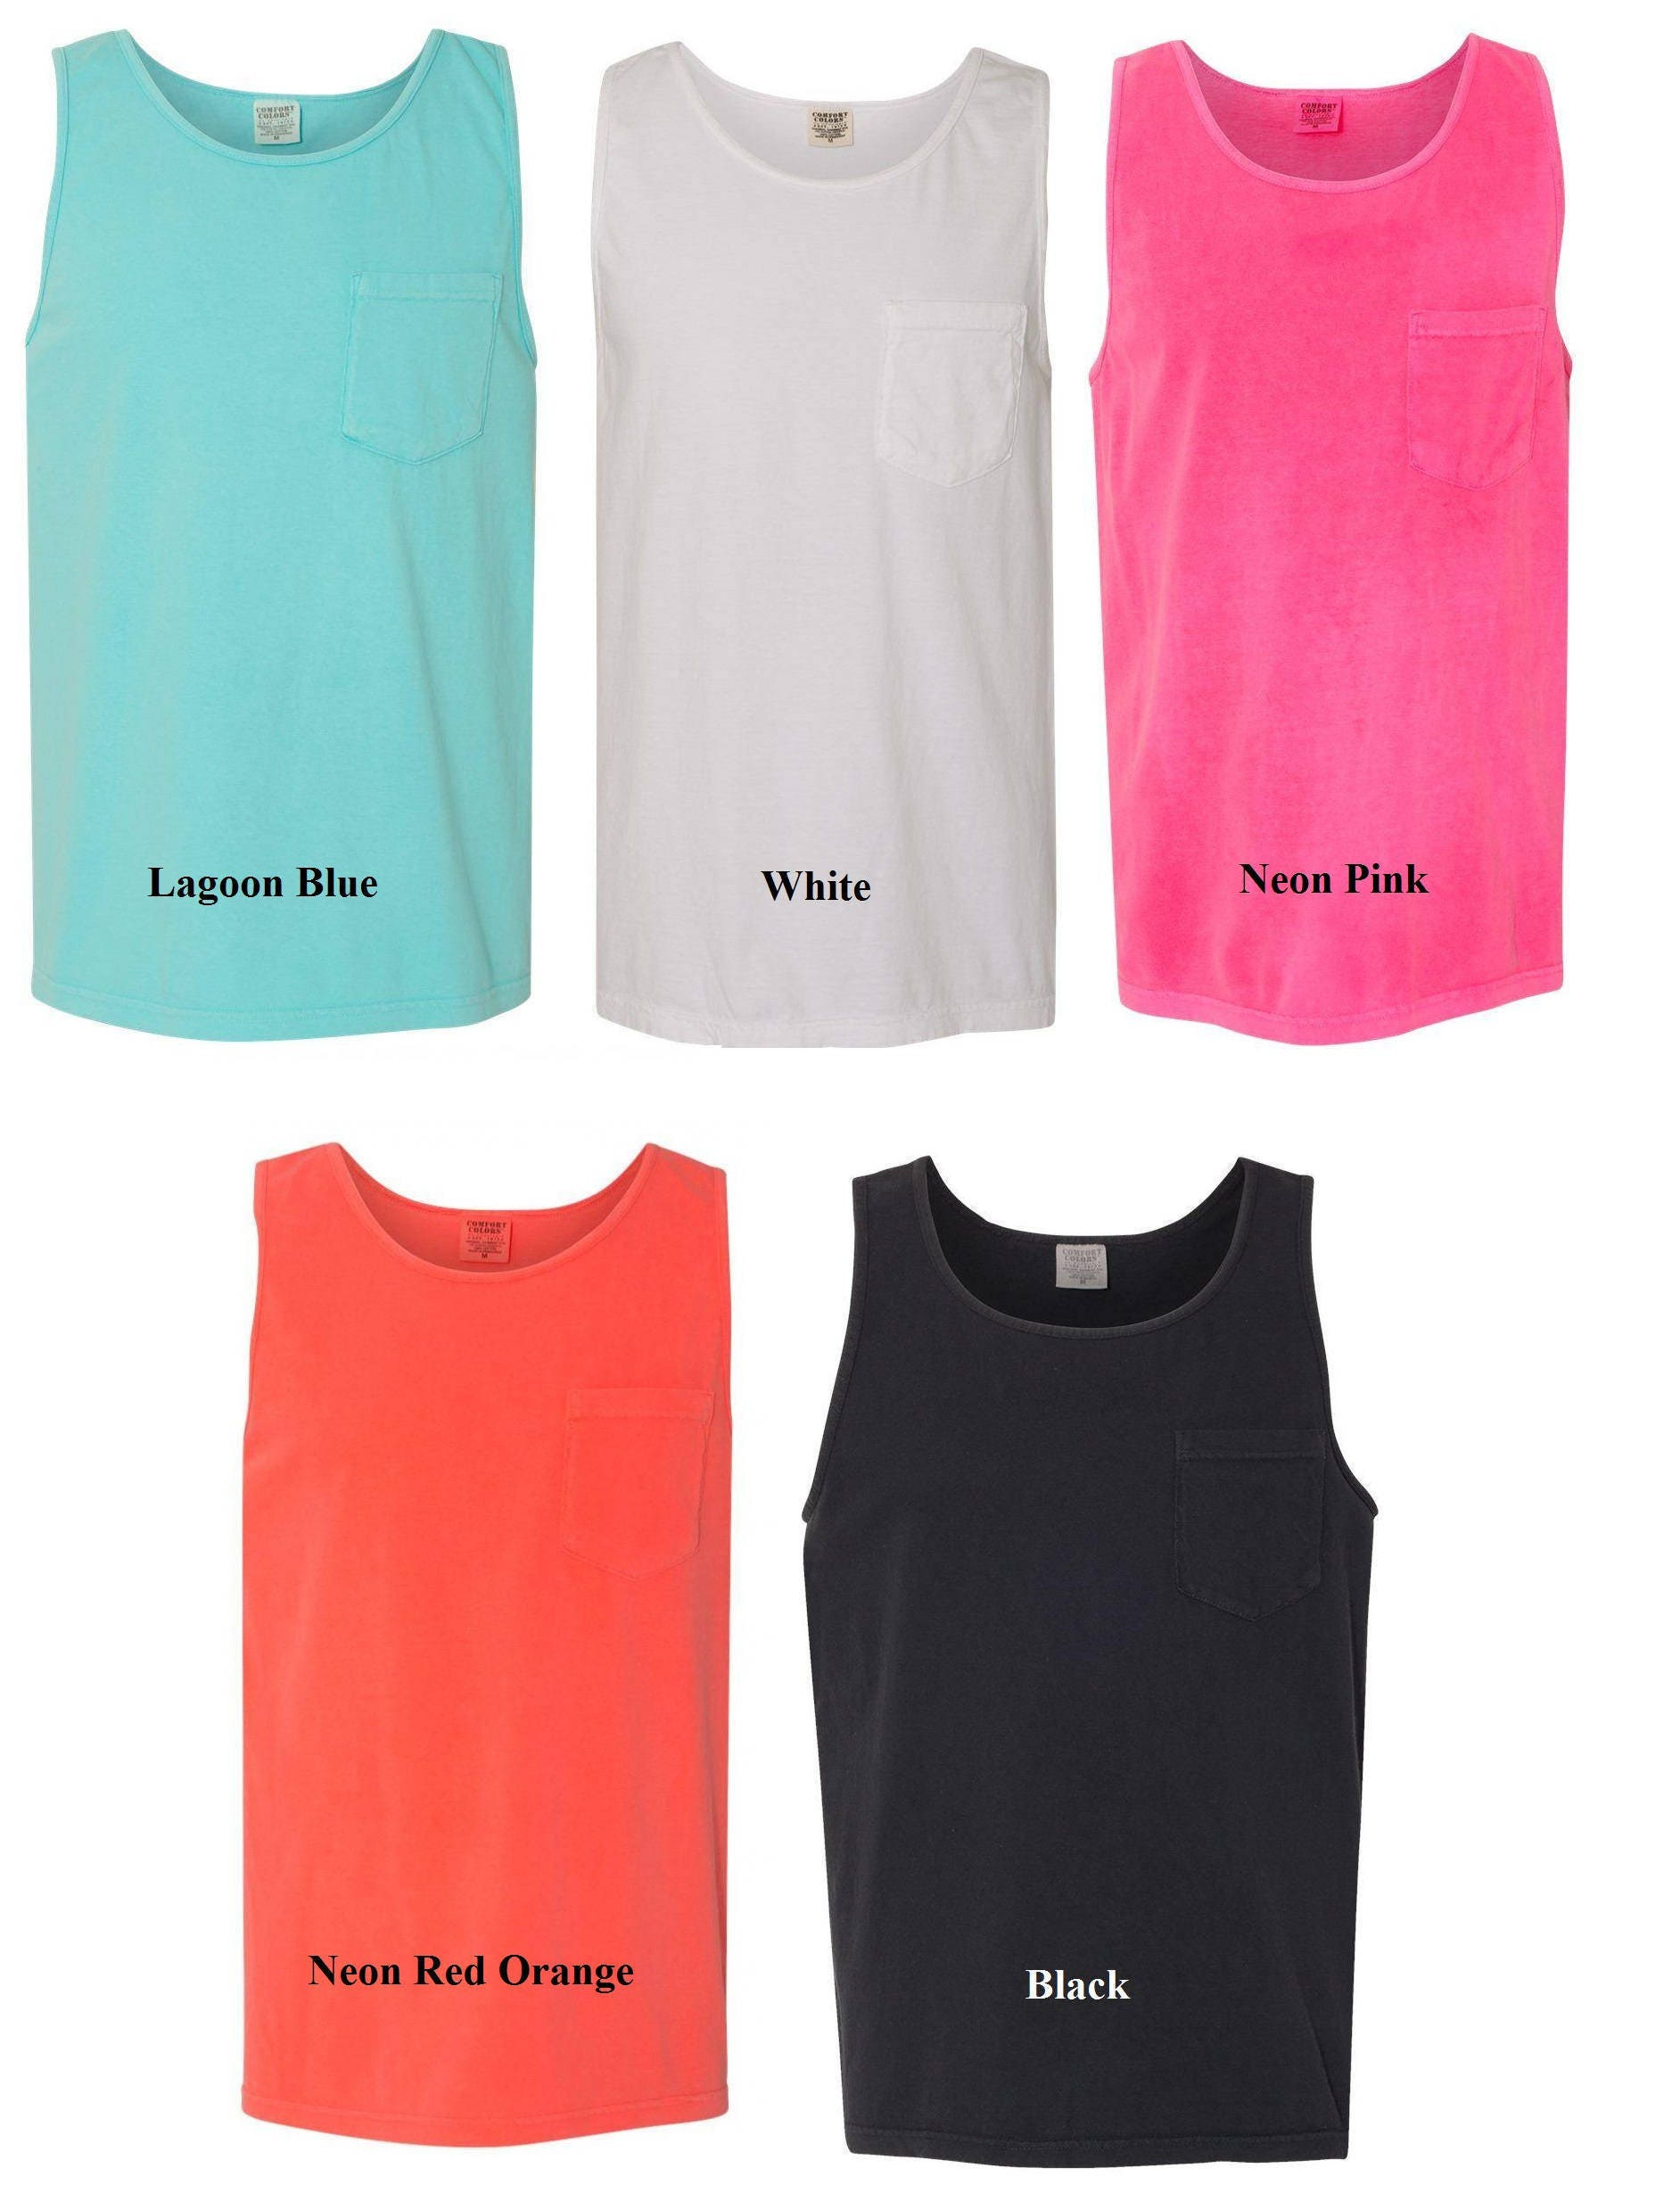 shirts s comfort categories cotton comforter styles sleeveless detail tank tops mesh reversible t colors catalog image large men pocket products